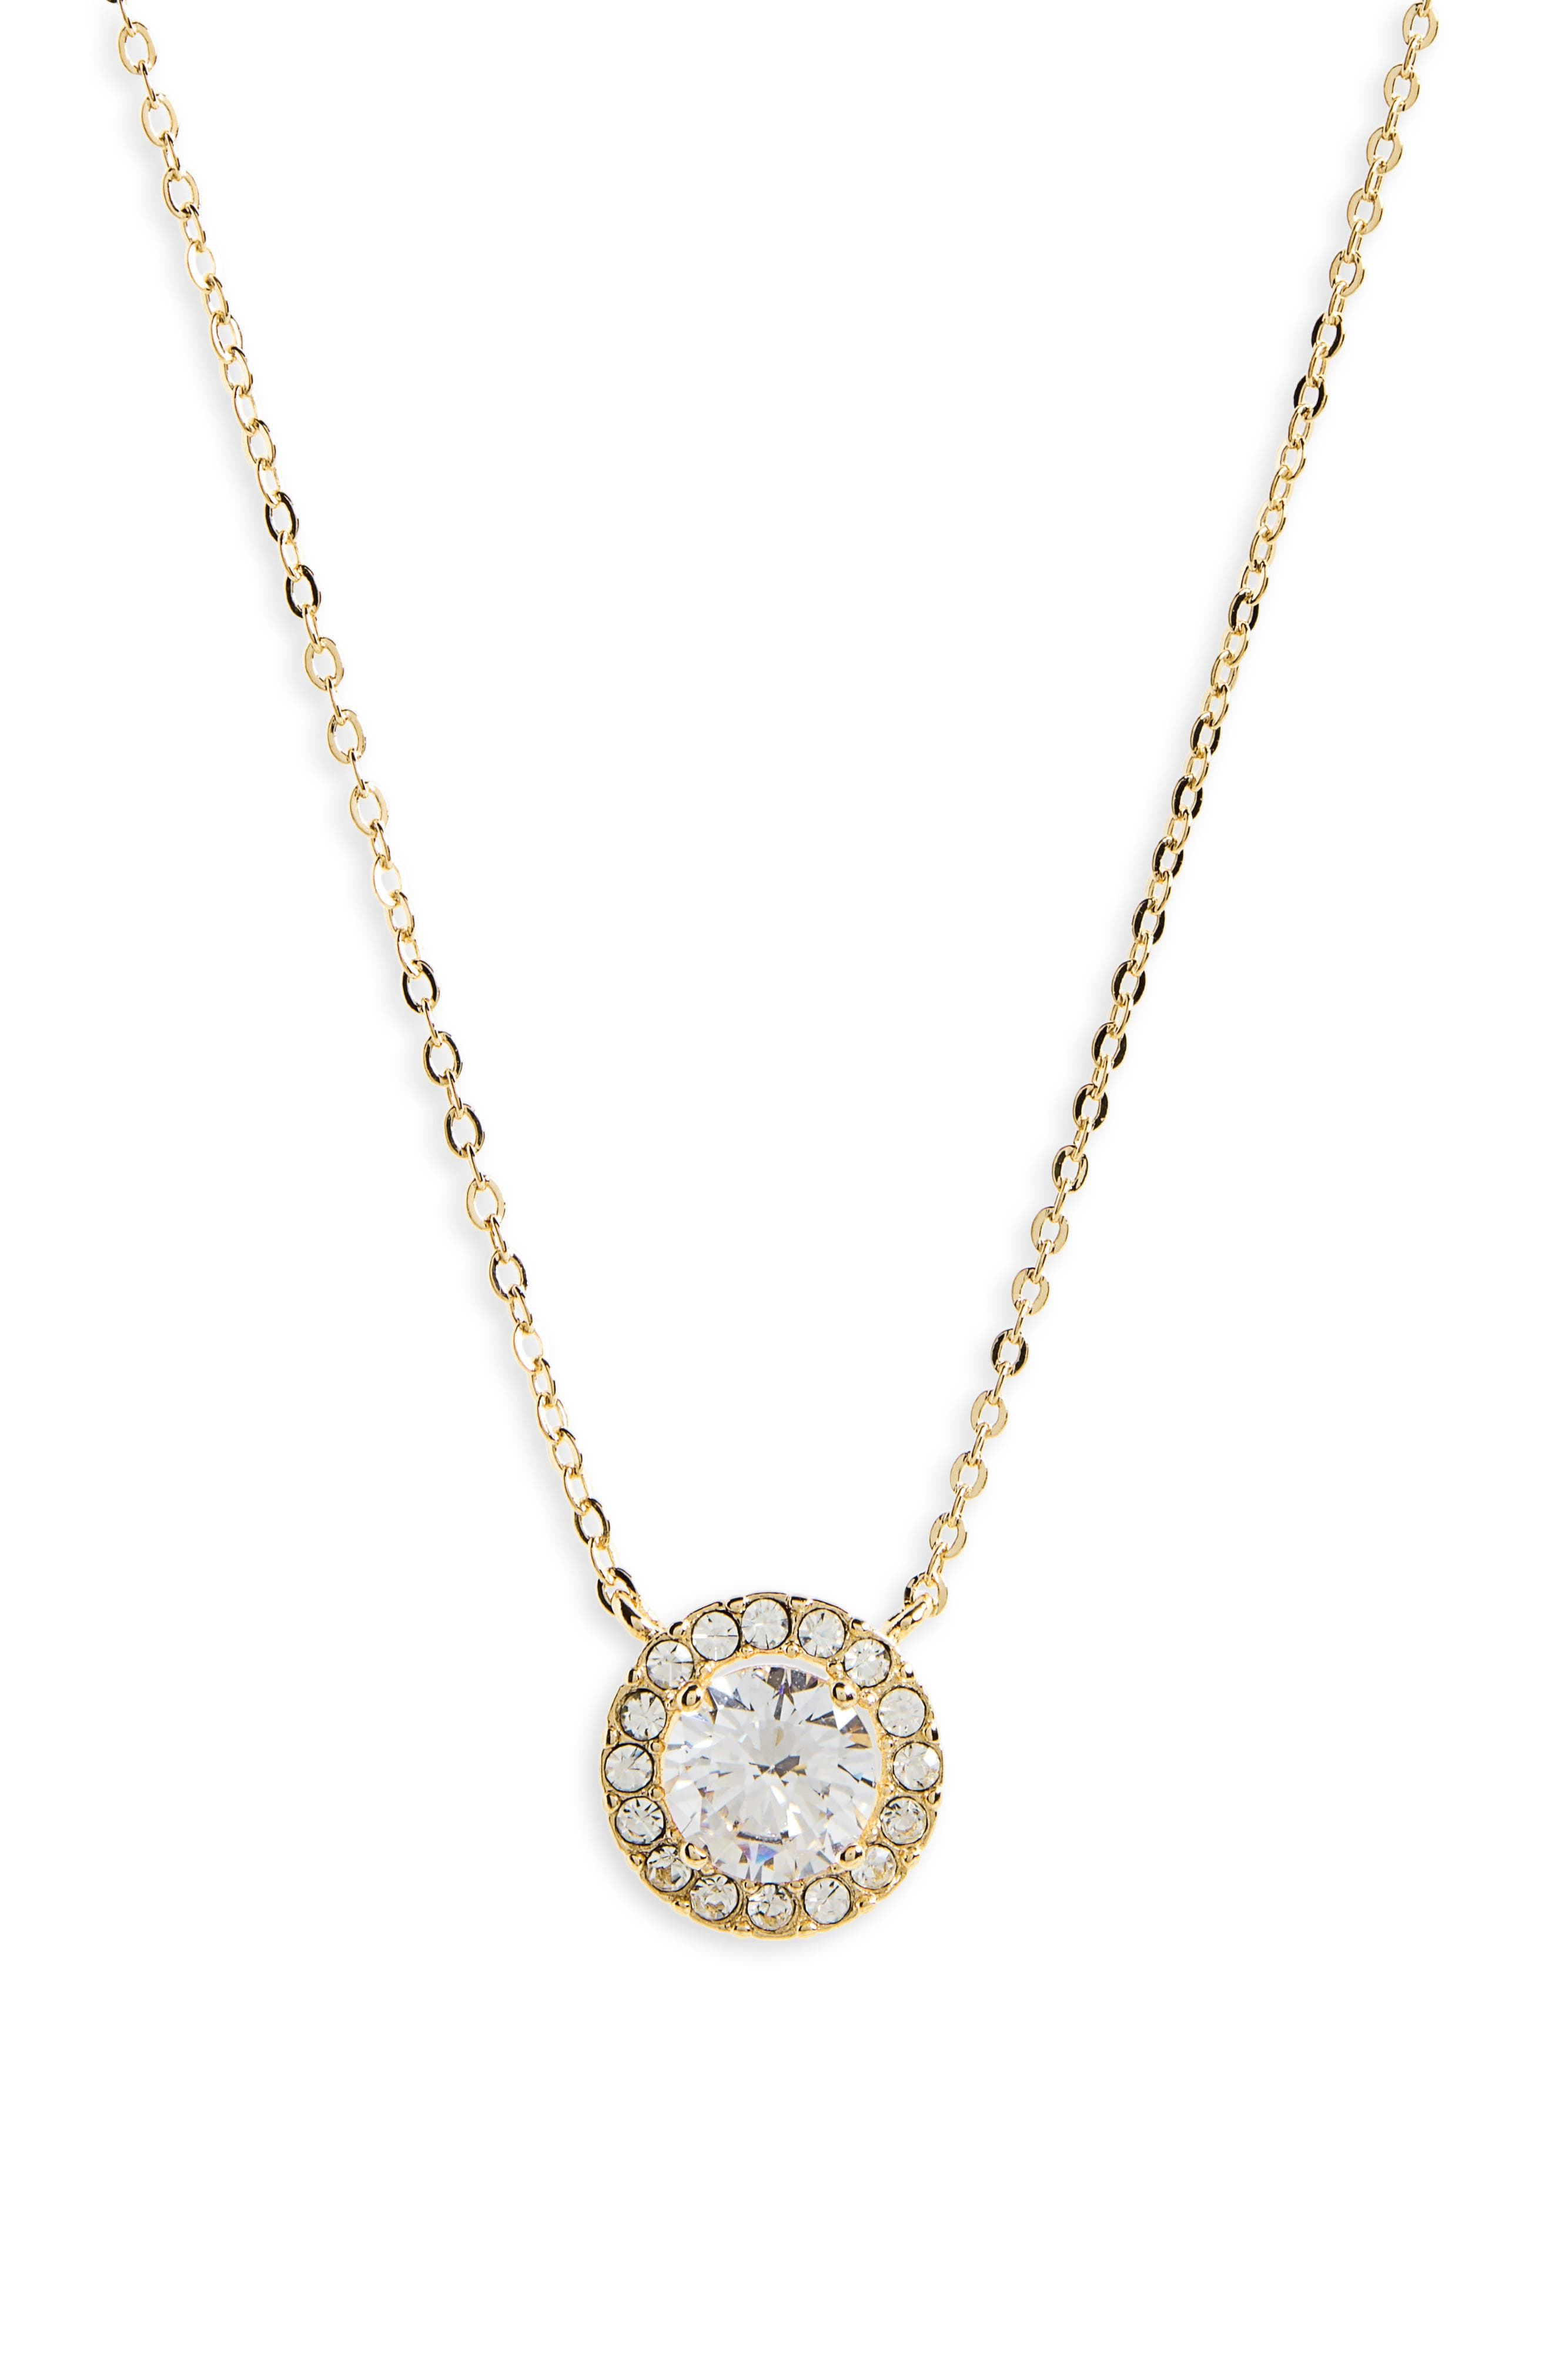 Cubic Zirconia Pendant Necklace,                             Main thumbnail 1, color,                             CLEAR- GOLD